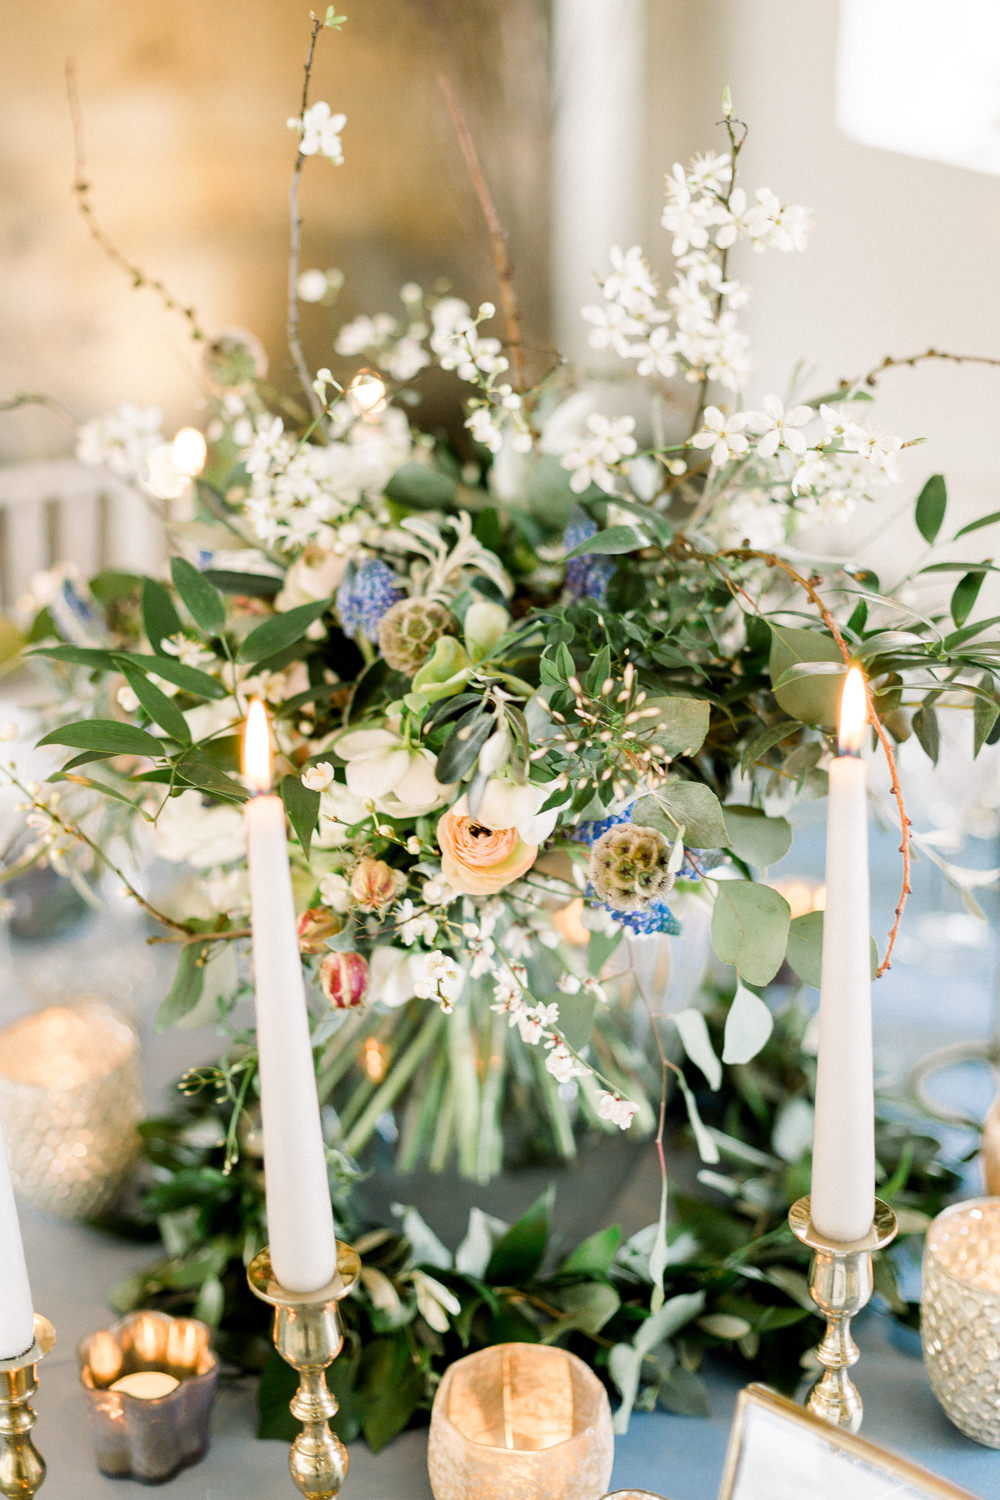 Table Flowers Centrepiece Candles Grape Hyacinth Anemone Greenery Folliage Nigella Seeds Scabious Blossom Winter Blue Barn Wedding Ideas Joanna Briggs Photography